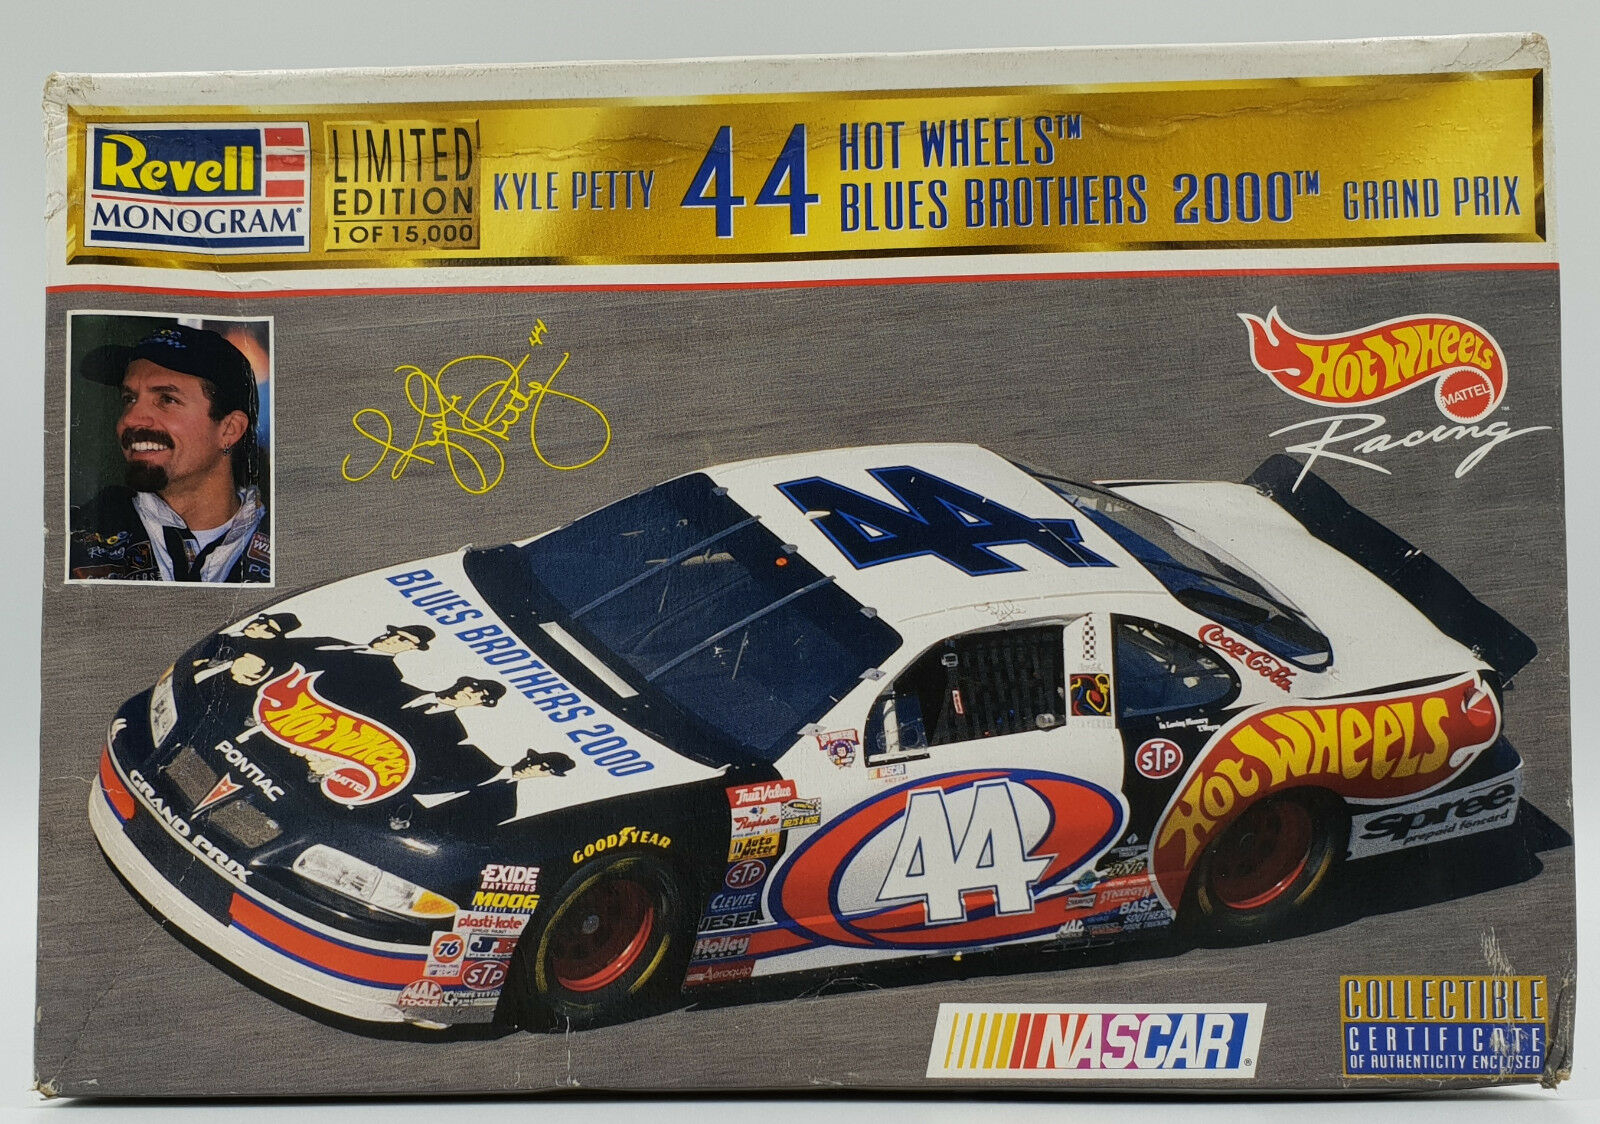 NASCAR   KY;E PETTY 44 HOTWHEELS blueES BROS 2000 MODEL KIT MADE BY REVELL